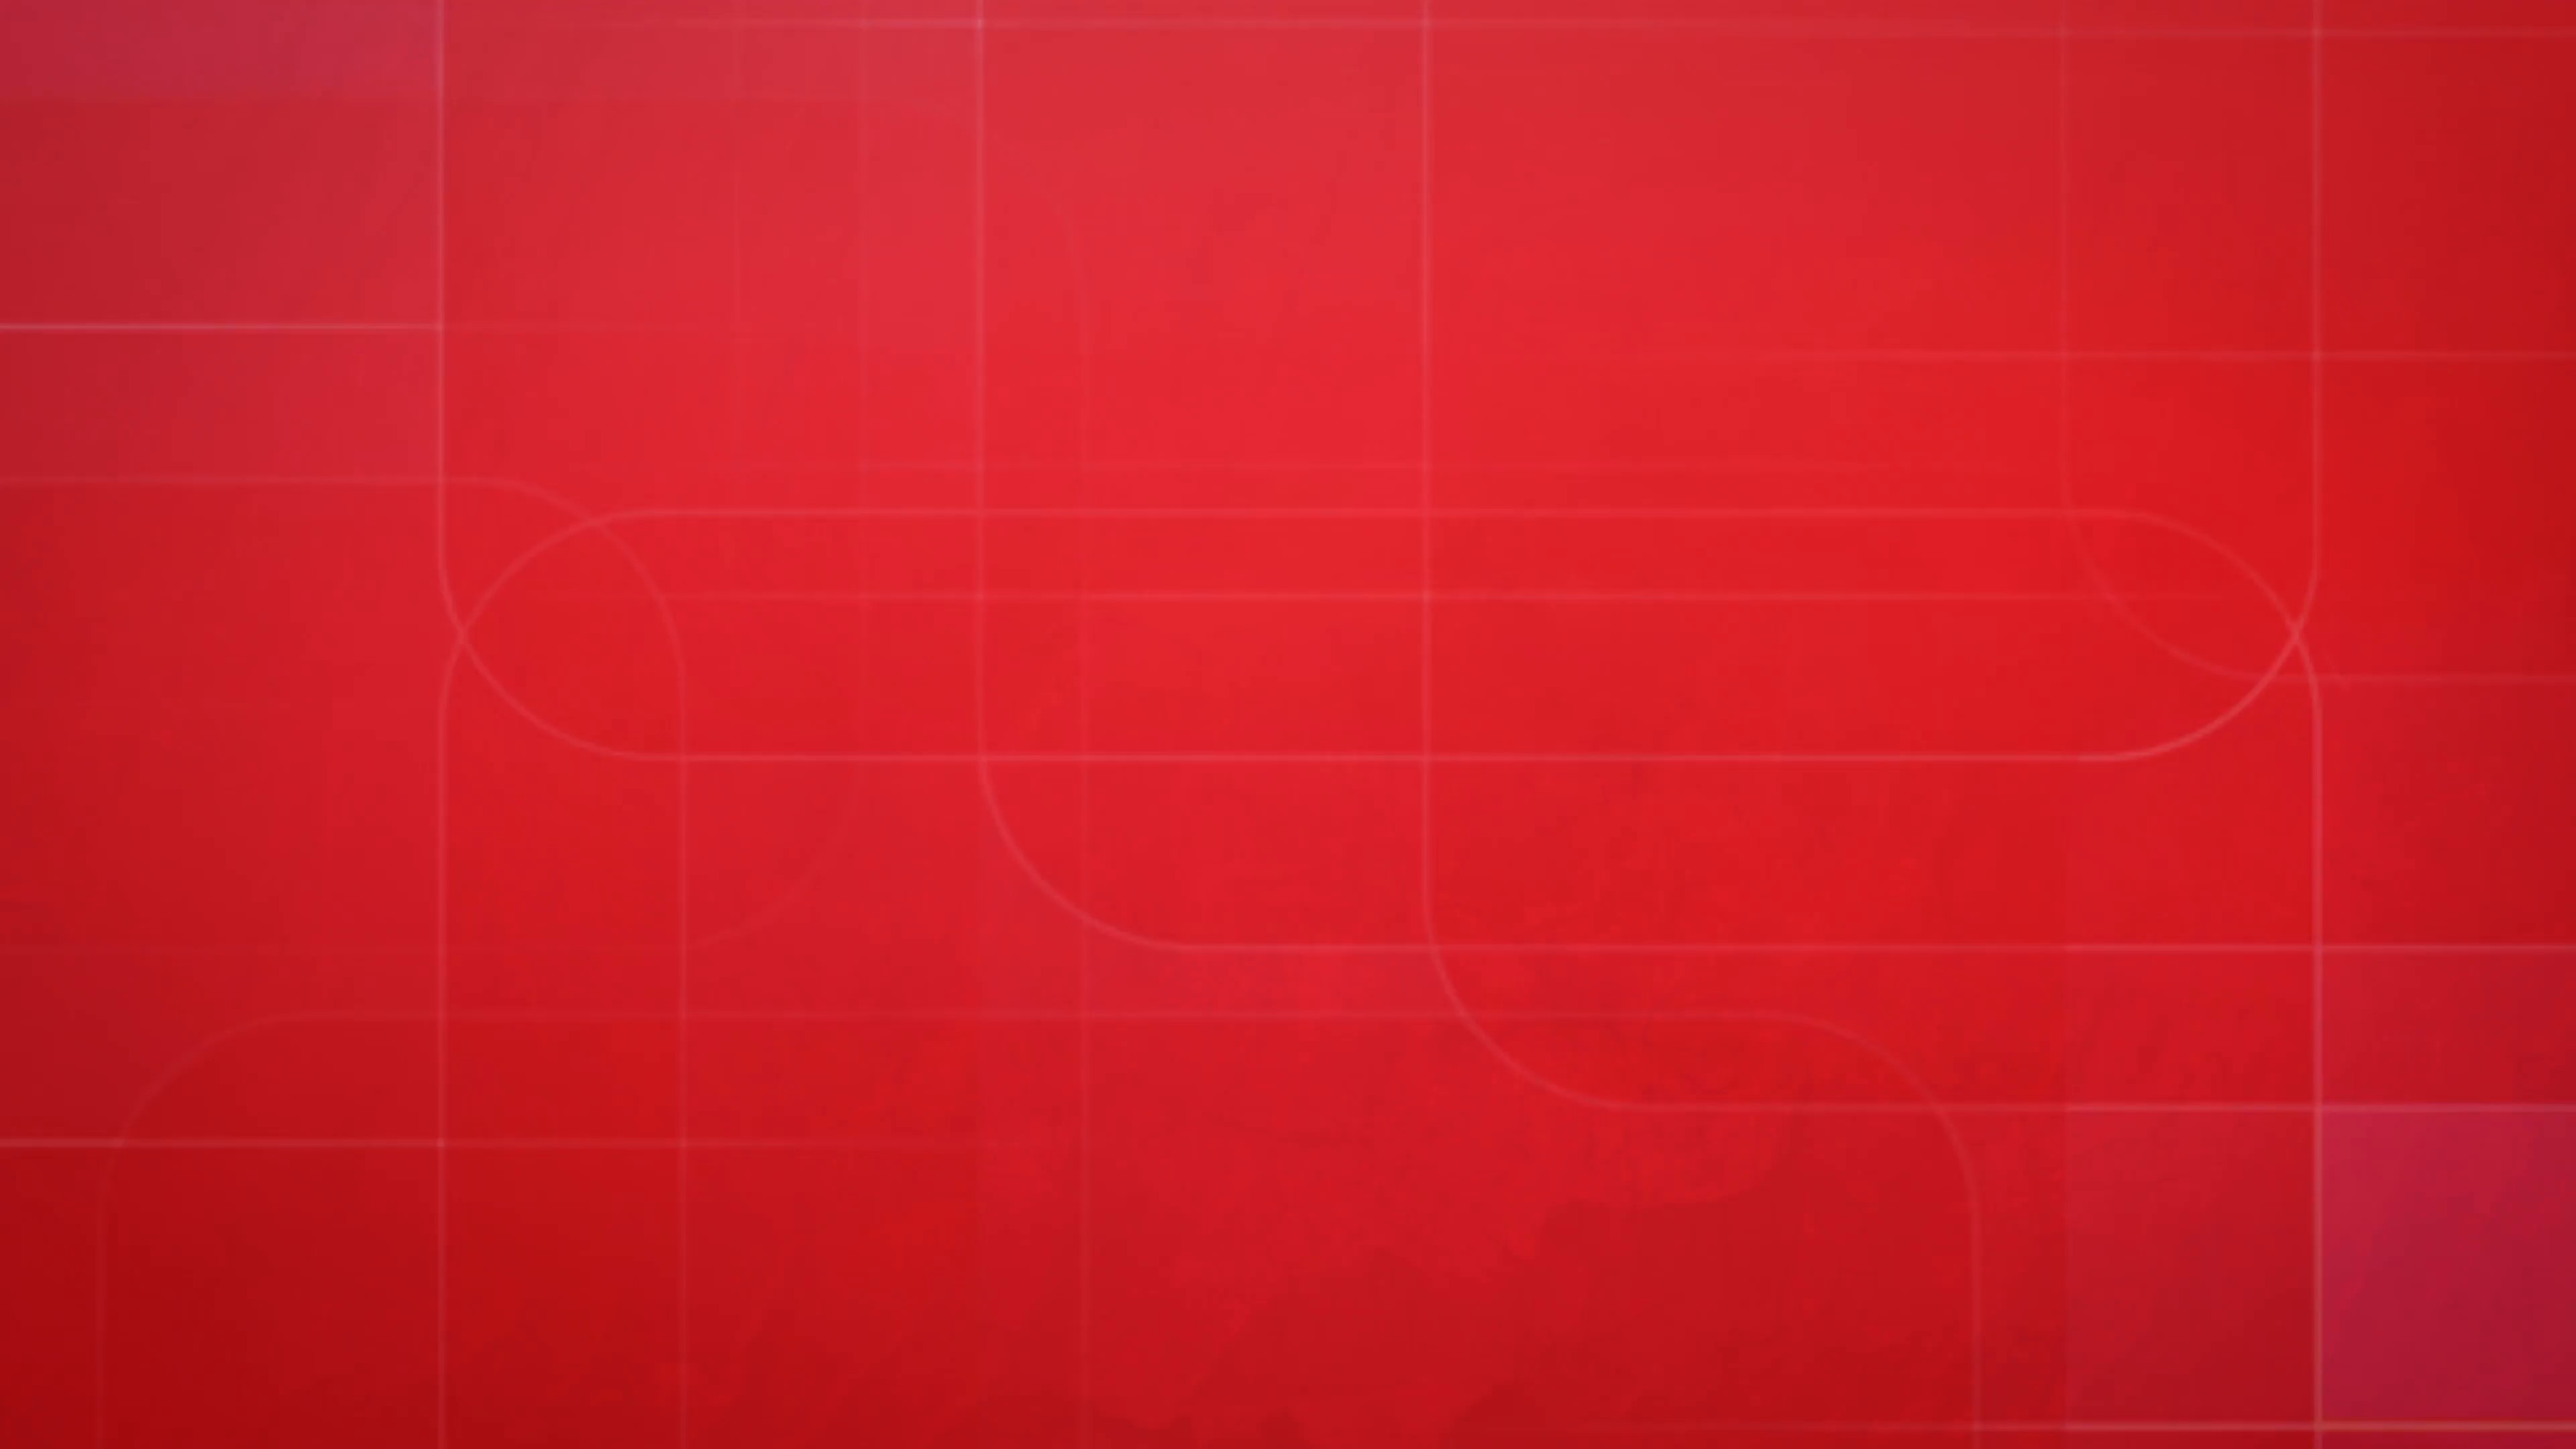 Red Background Pictures